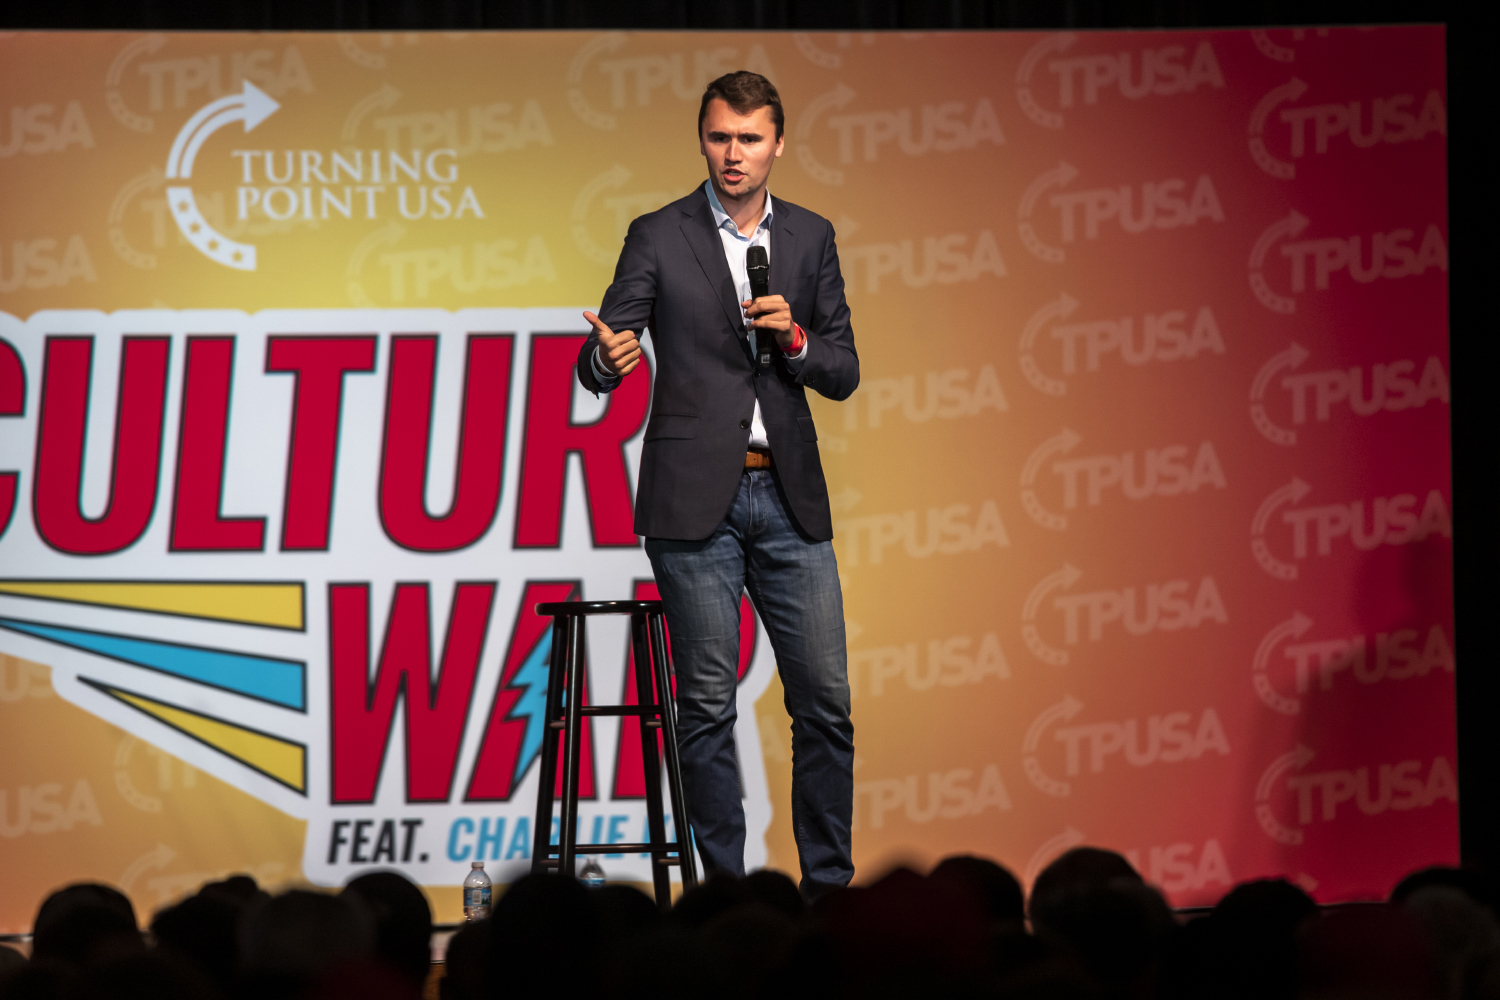 """Charlie Kirk, the founder of Turning Point USA, spoke out to the Iowa City community during his """"Culture War"""" tour.  His tour at The University Iowa took place in the Iowa Memorial Union at 7pm on October 23, 2019."""